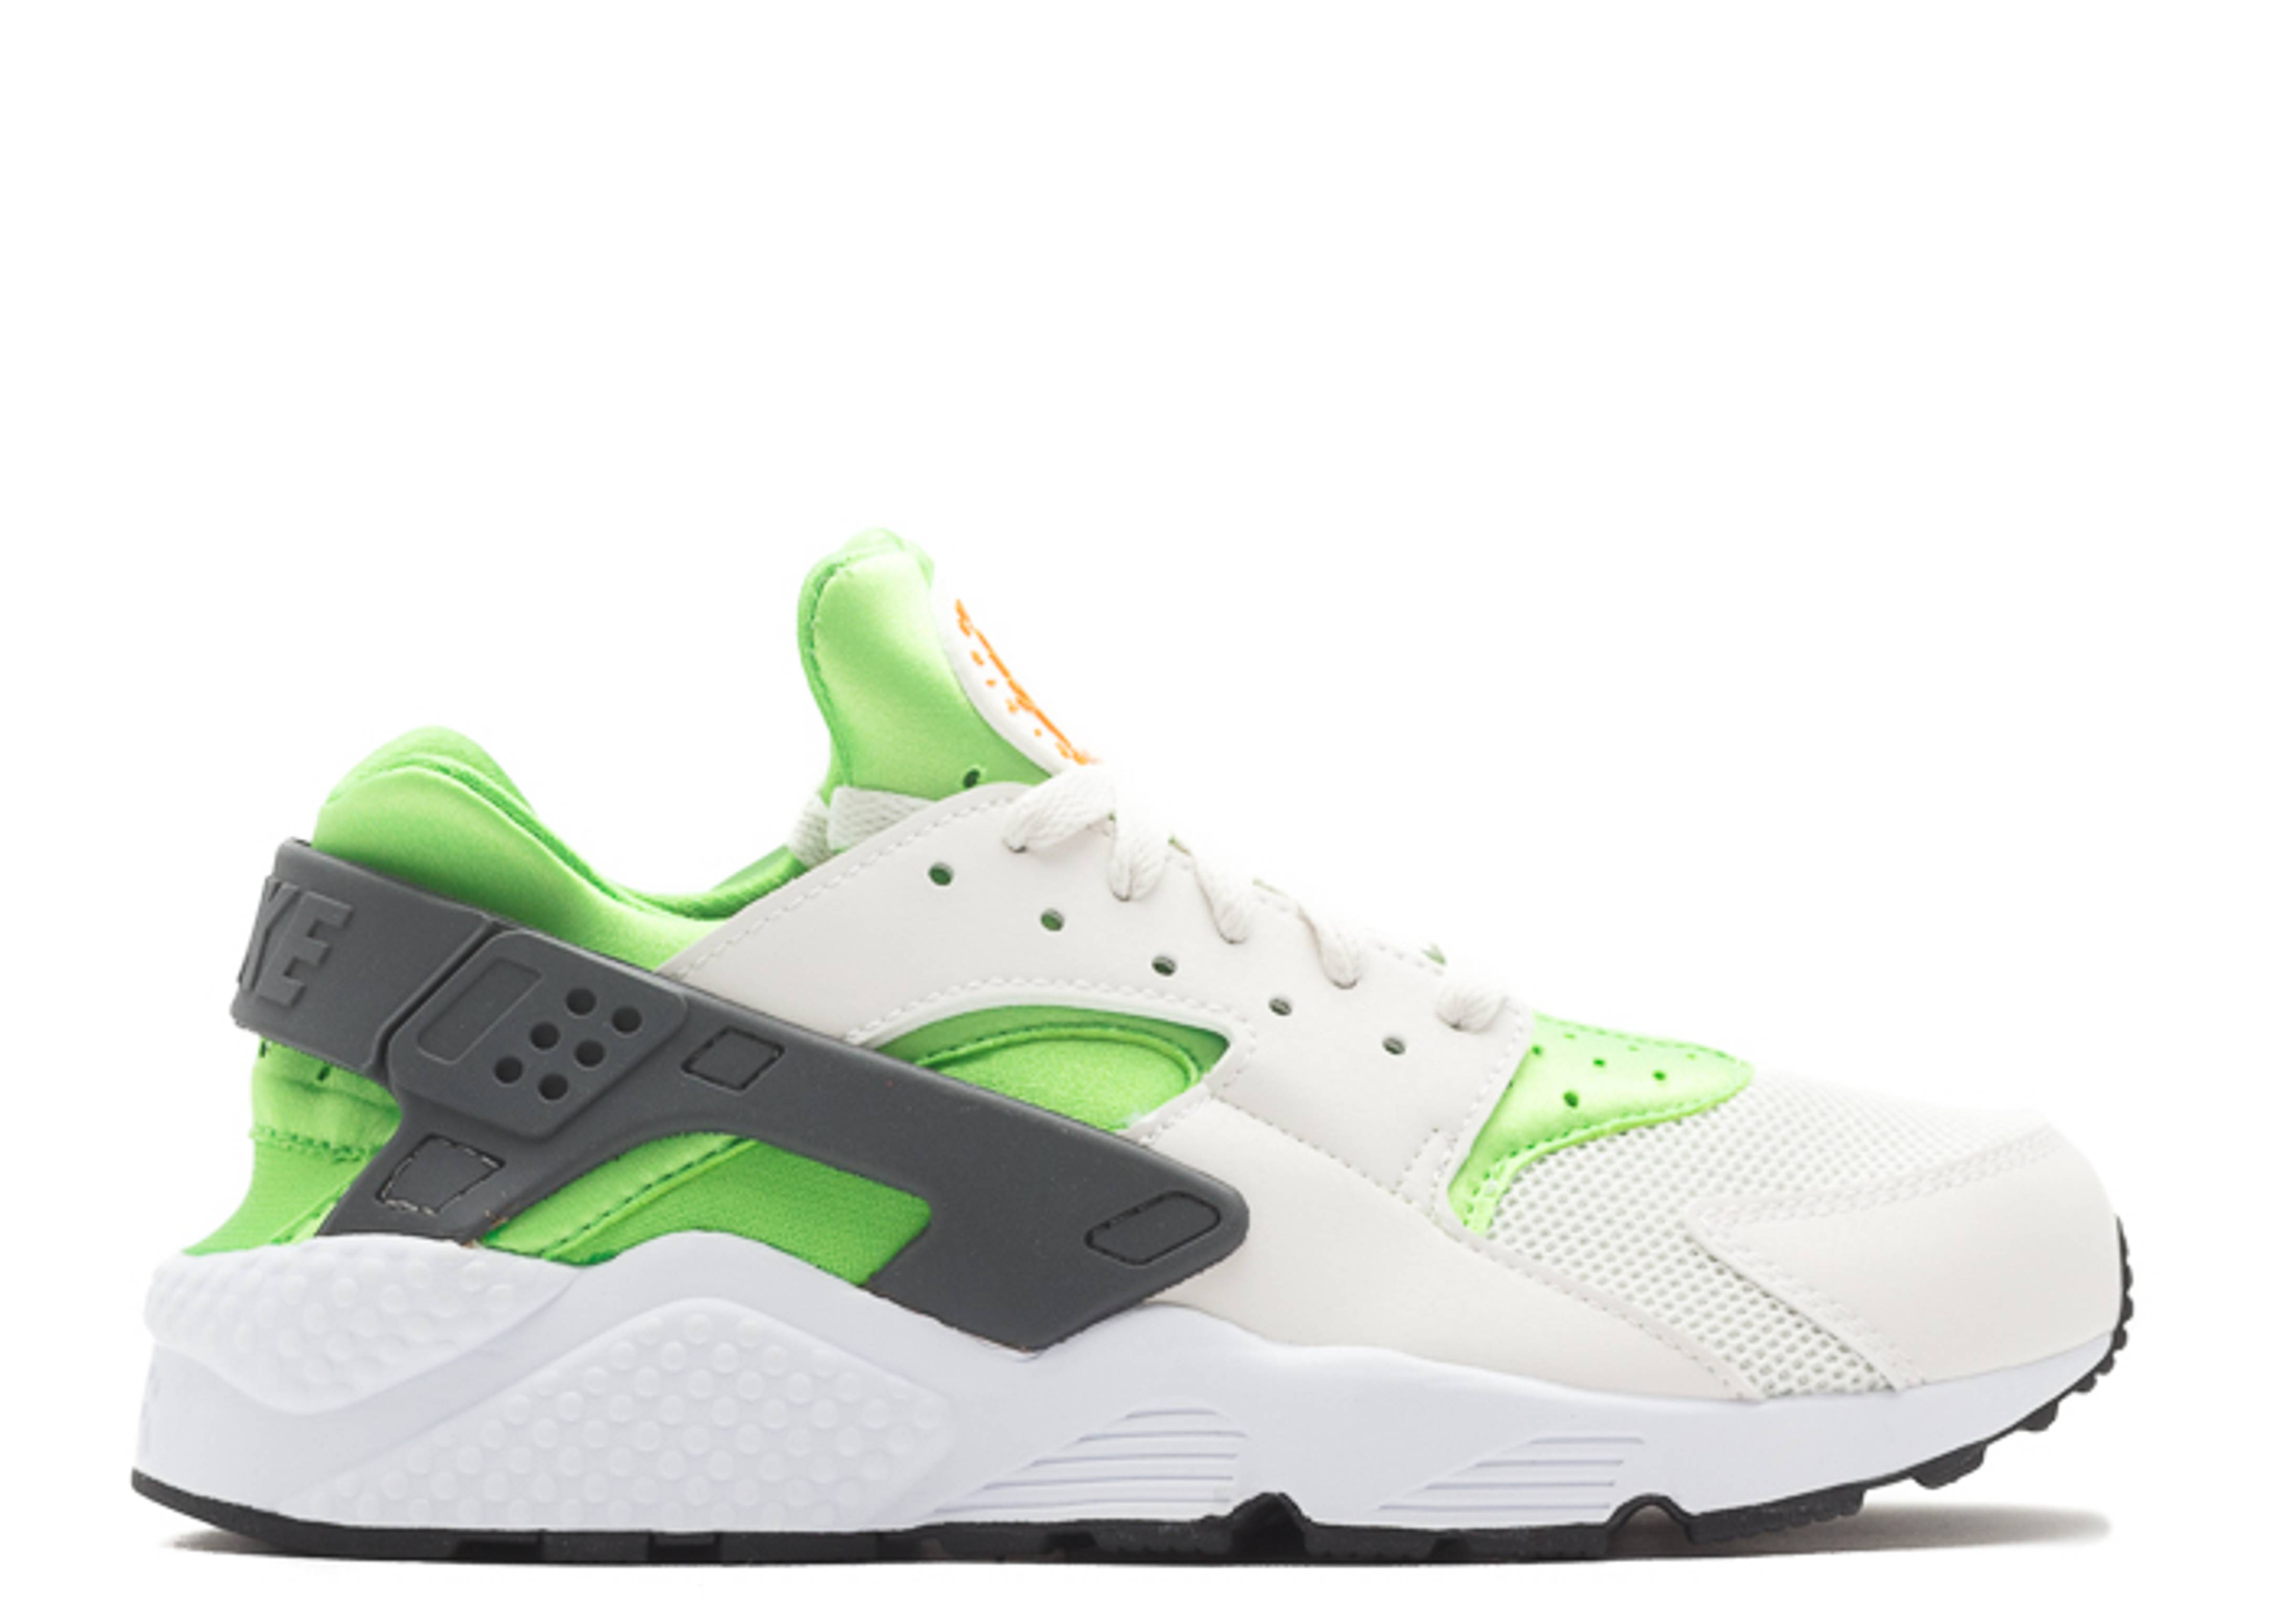 hot sale online superior quality great quality Air Huarache - Nike - 318429 304 - actn green/vvd orng-phntm-wht ...